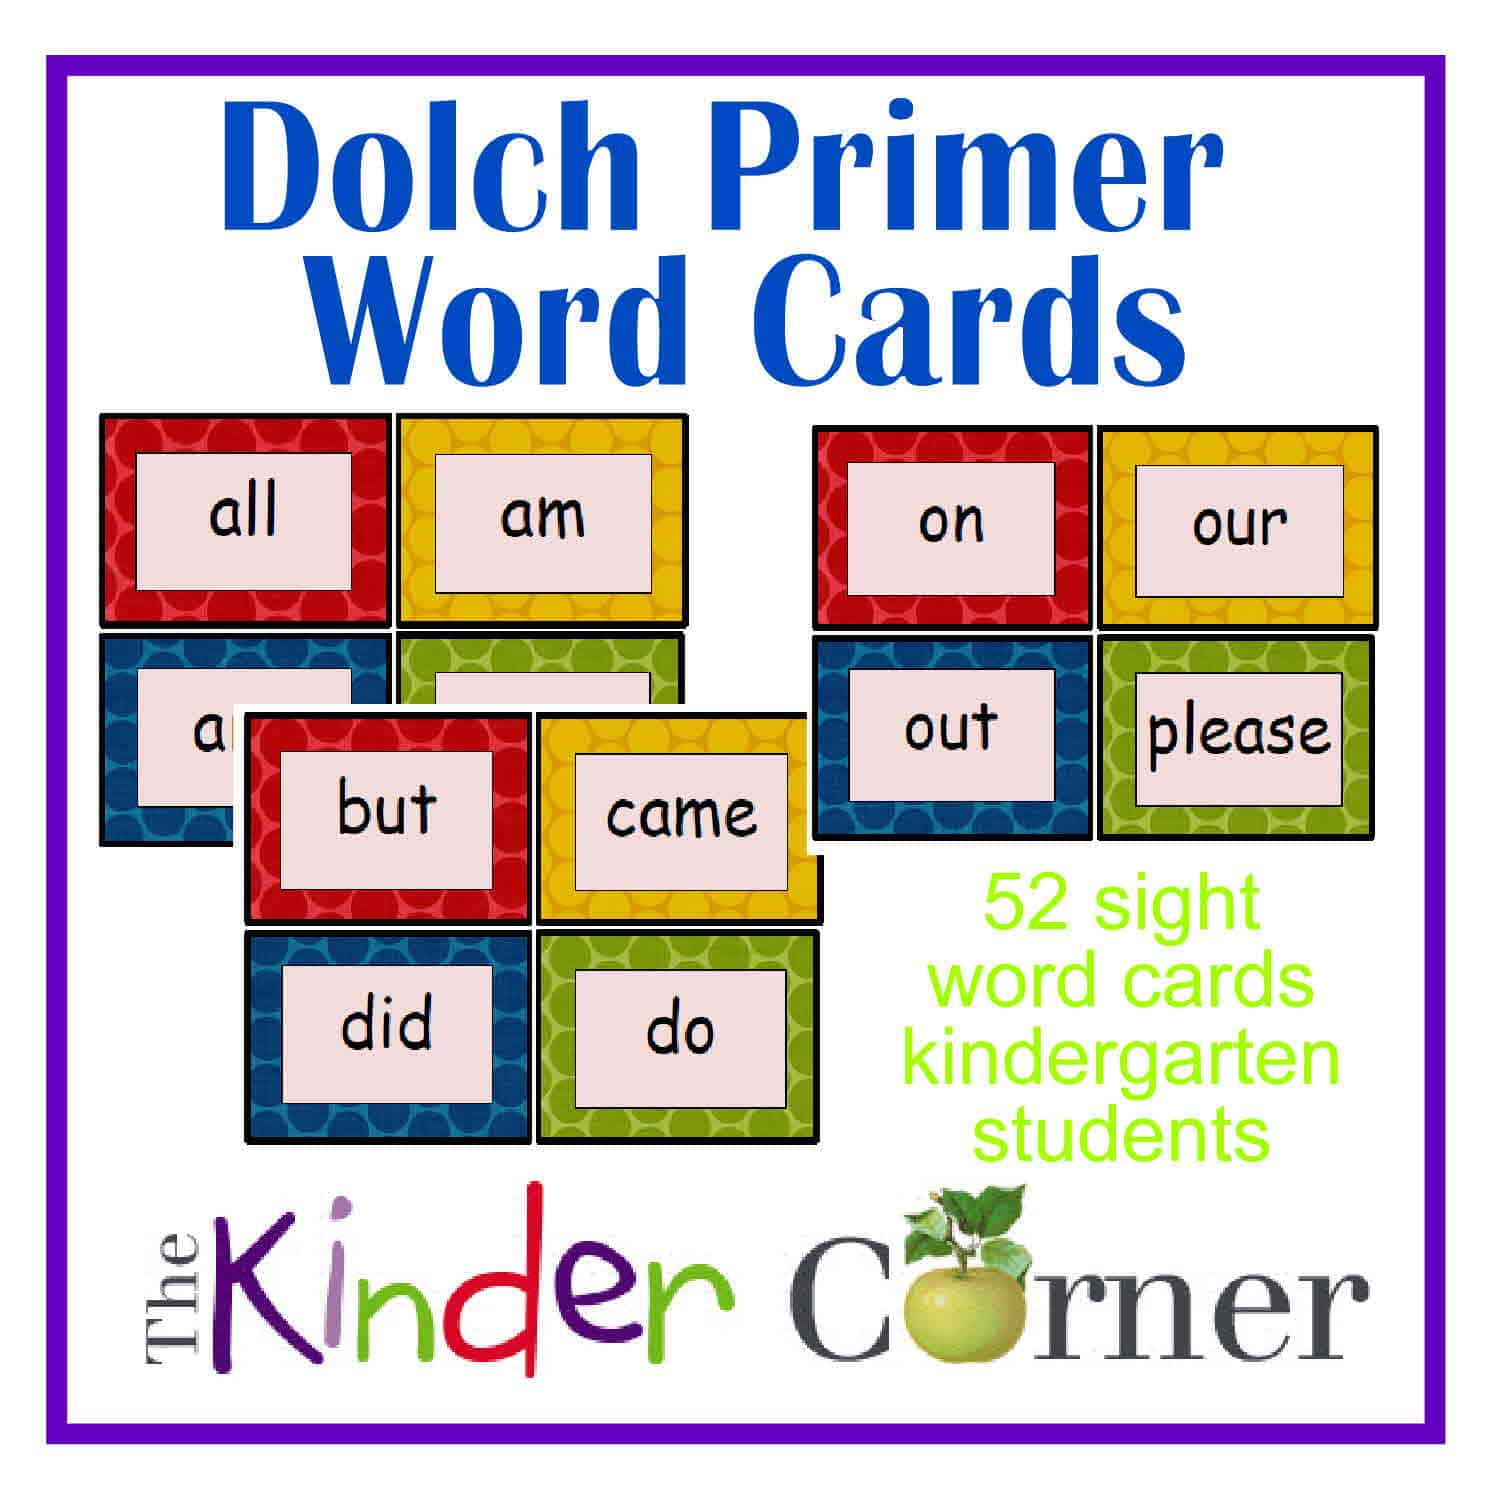 Dolch Primer Word Cards